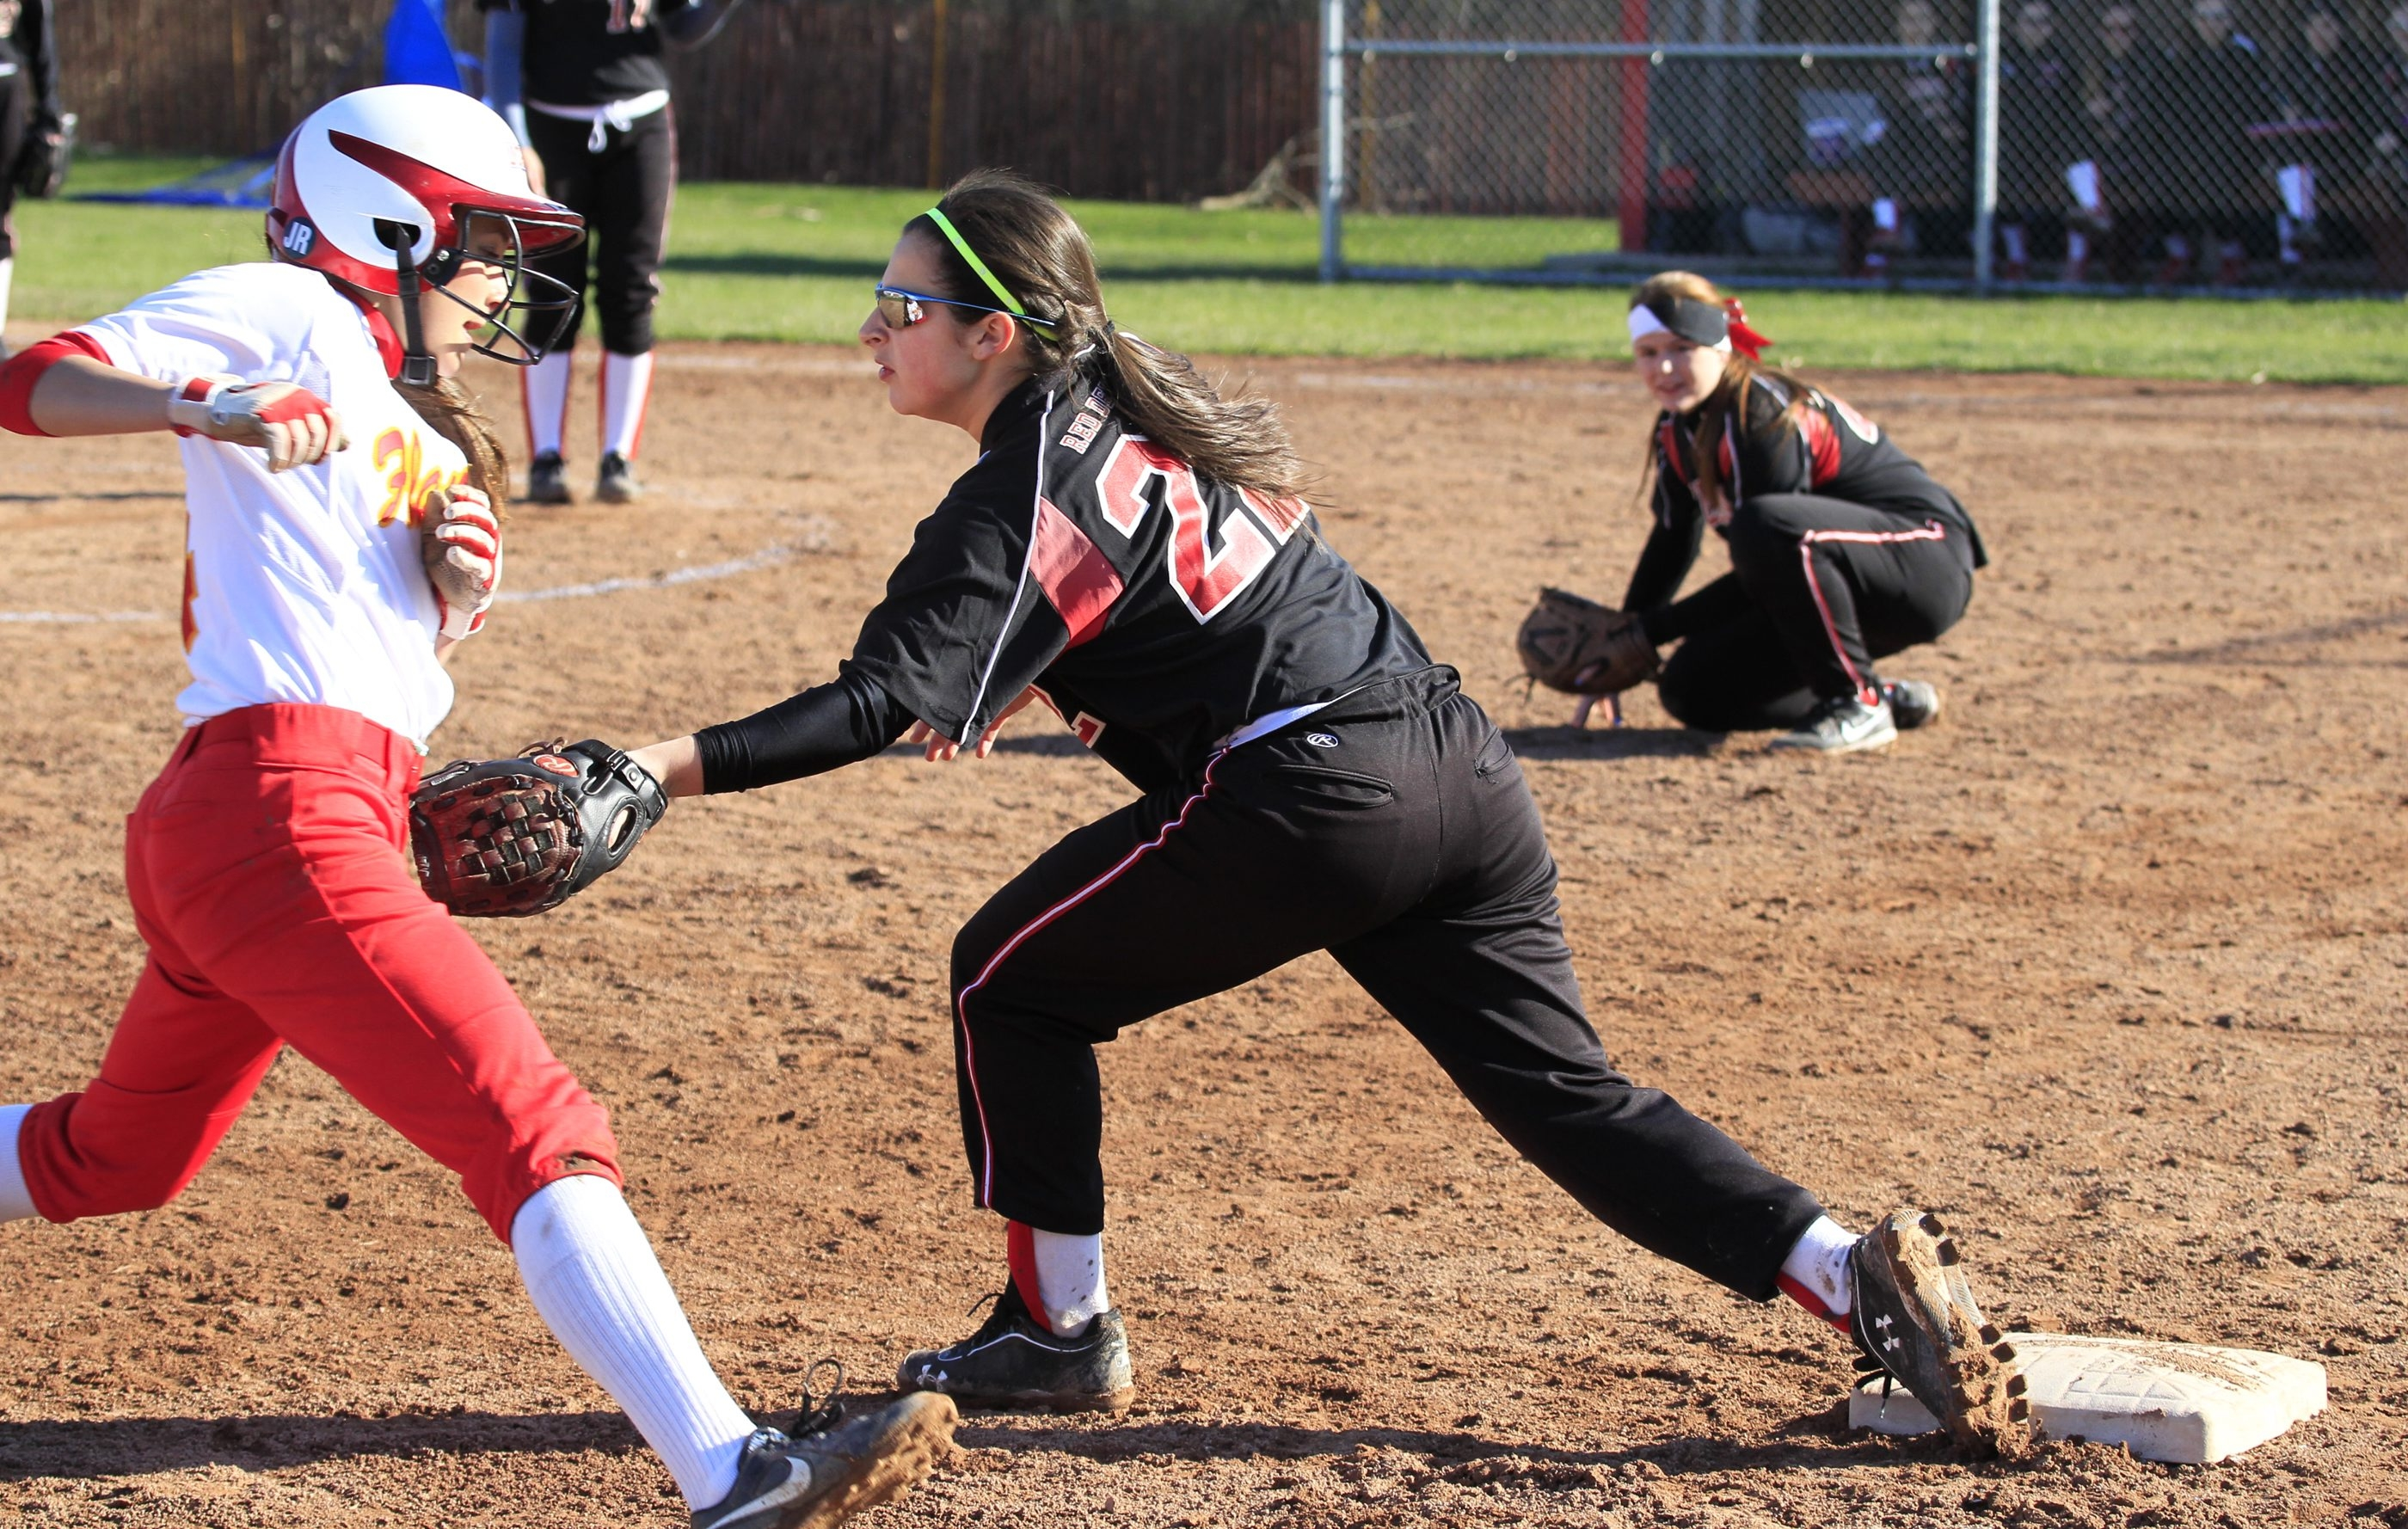 Clarence third baseman Gabby Keller tags Williamsville East's Marissa Birzon as she attempted to steal third base. Clarence won the game, 16-2.